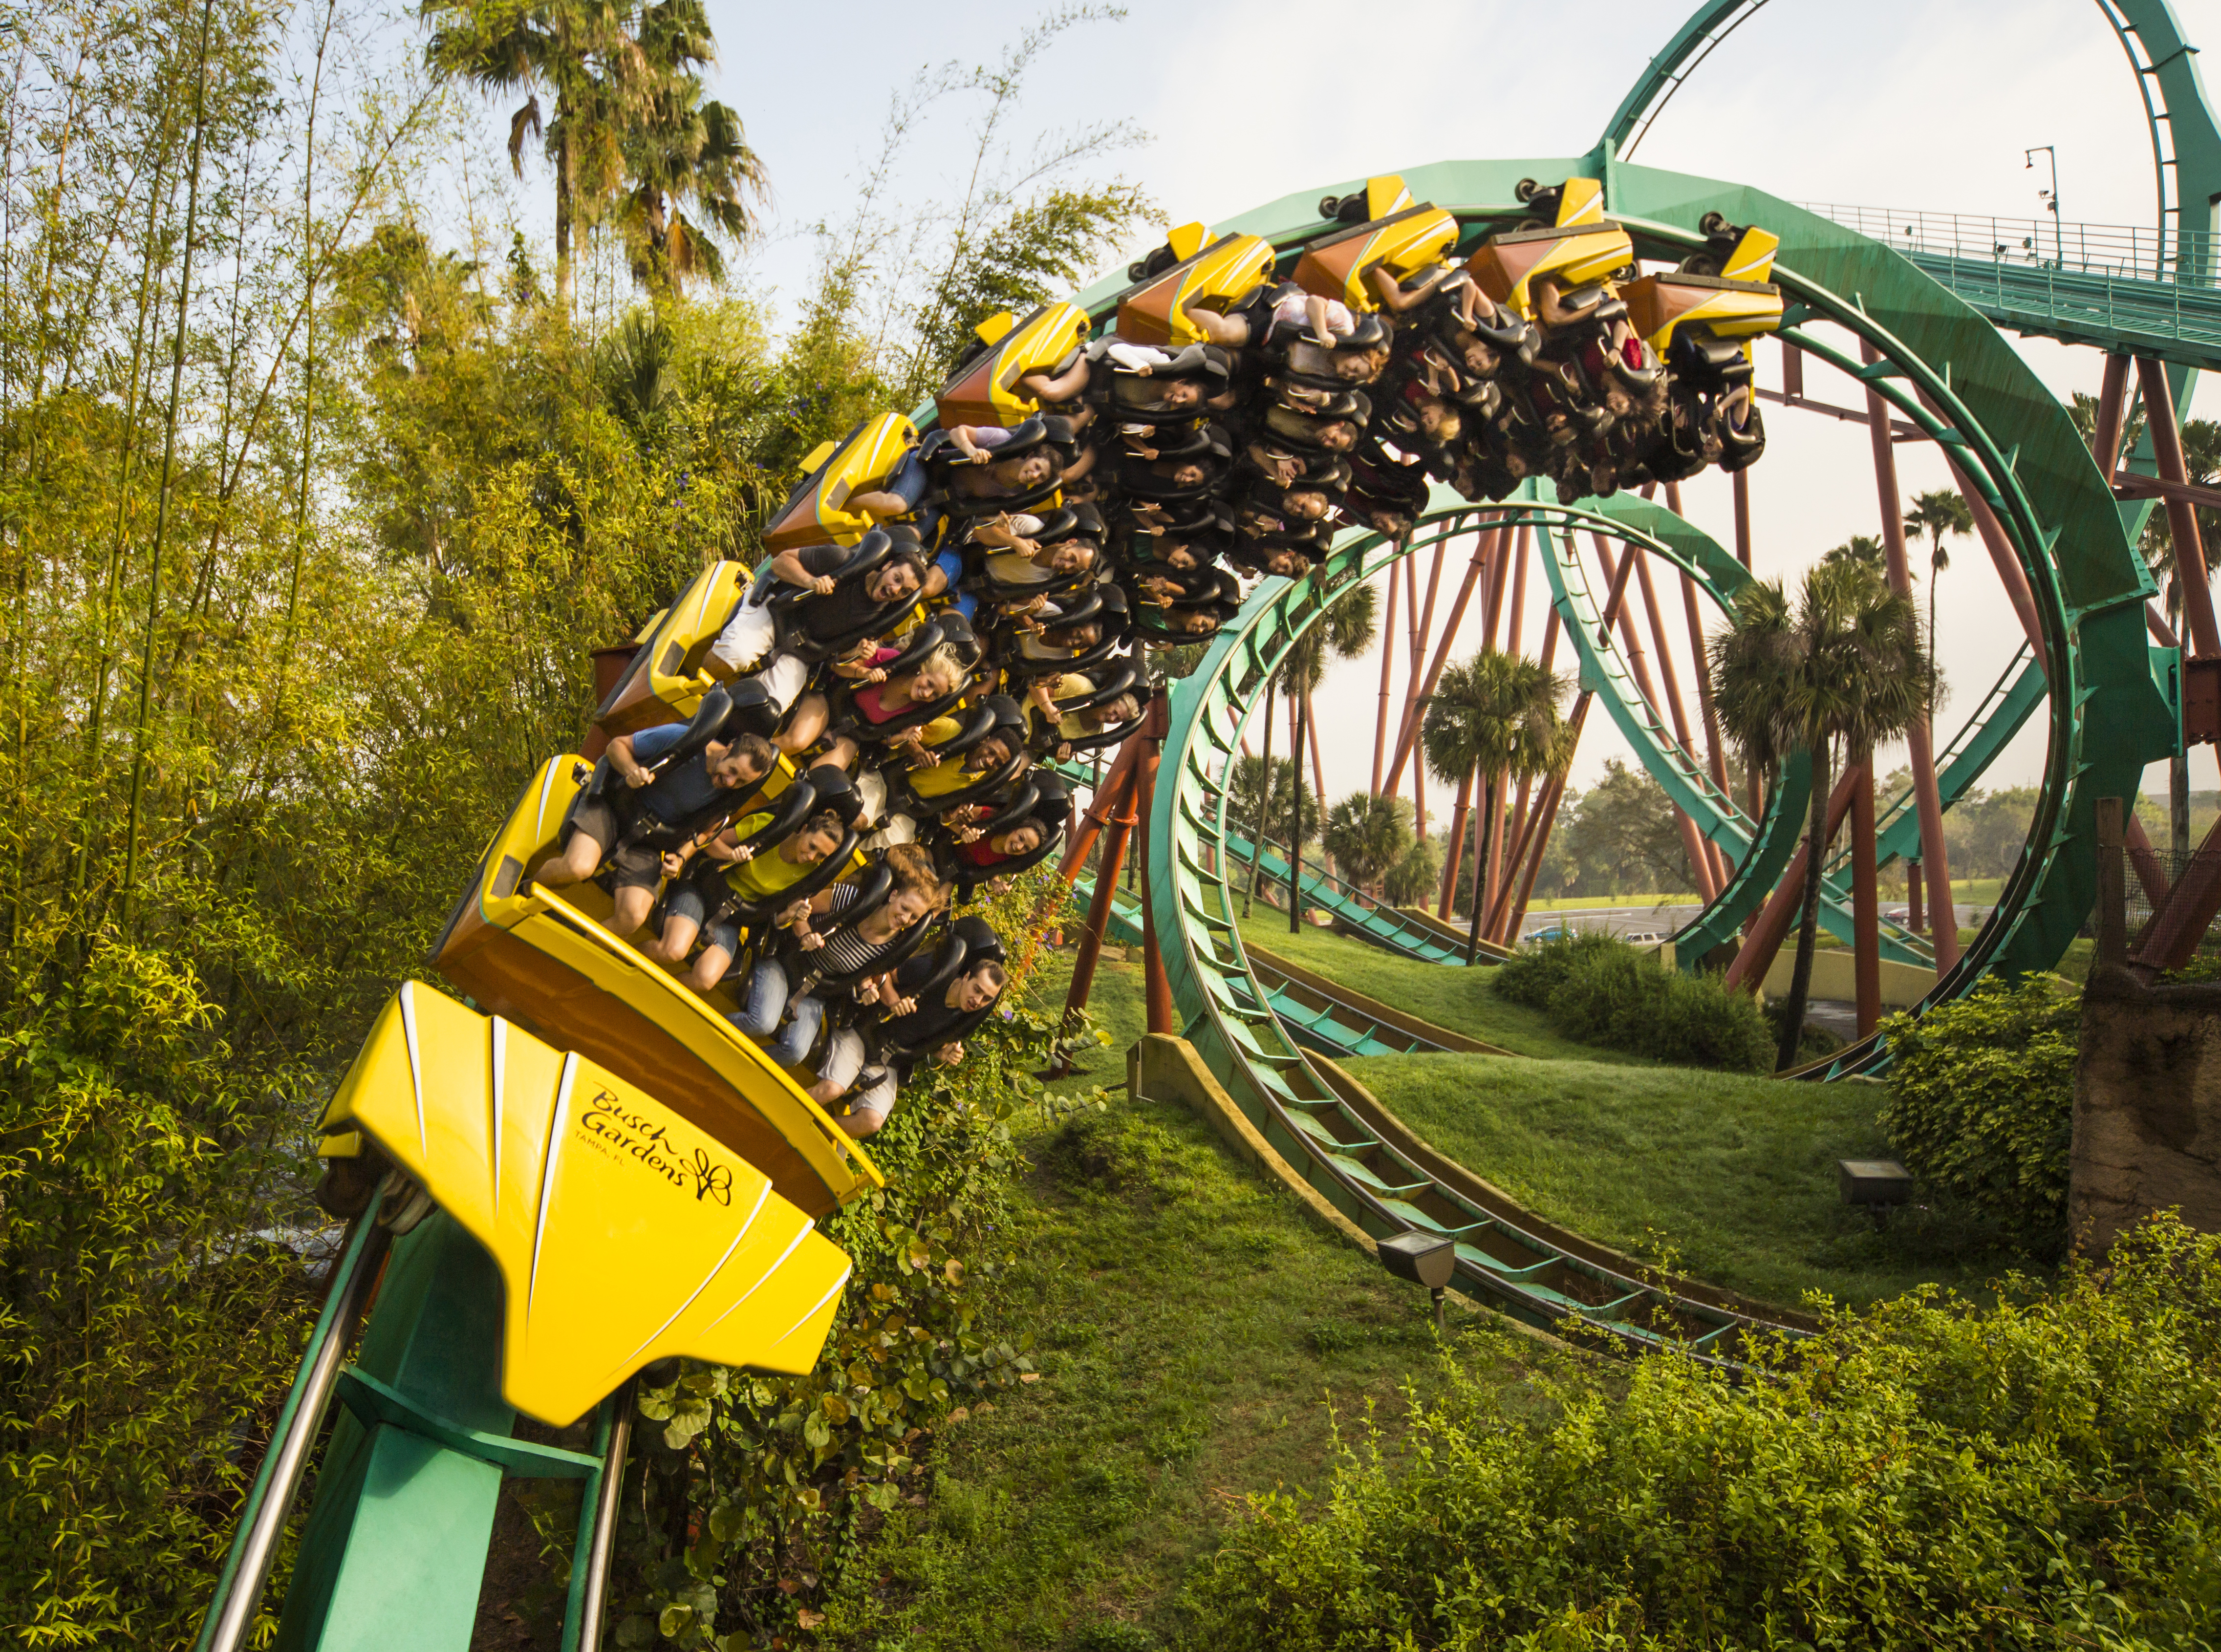 Just In Time For The Holiday Season, Busch Gardens Tampa Bay Has Quite The  Gift Available For A Limited Time! Visitors Who Purchase A Two Park Fun  Card From ...